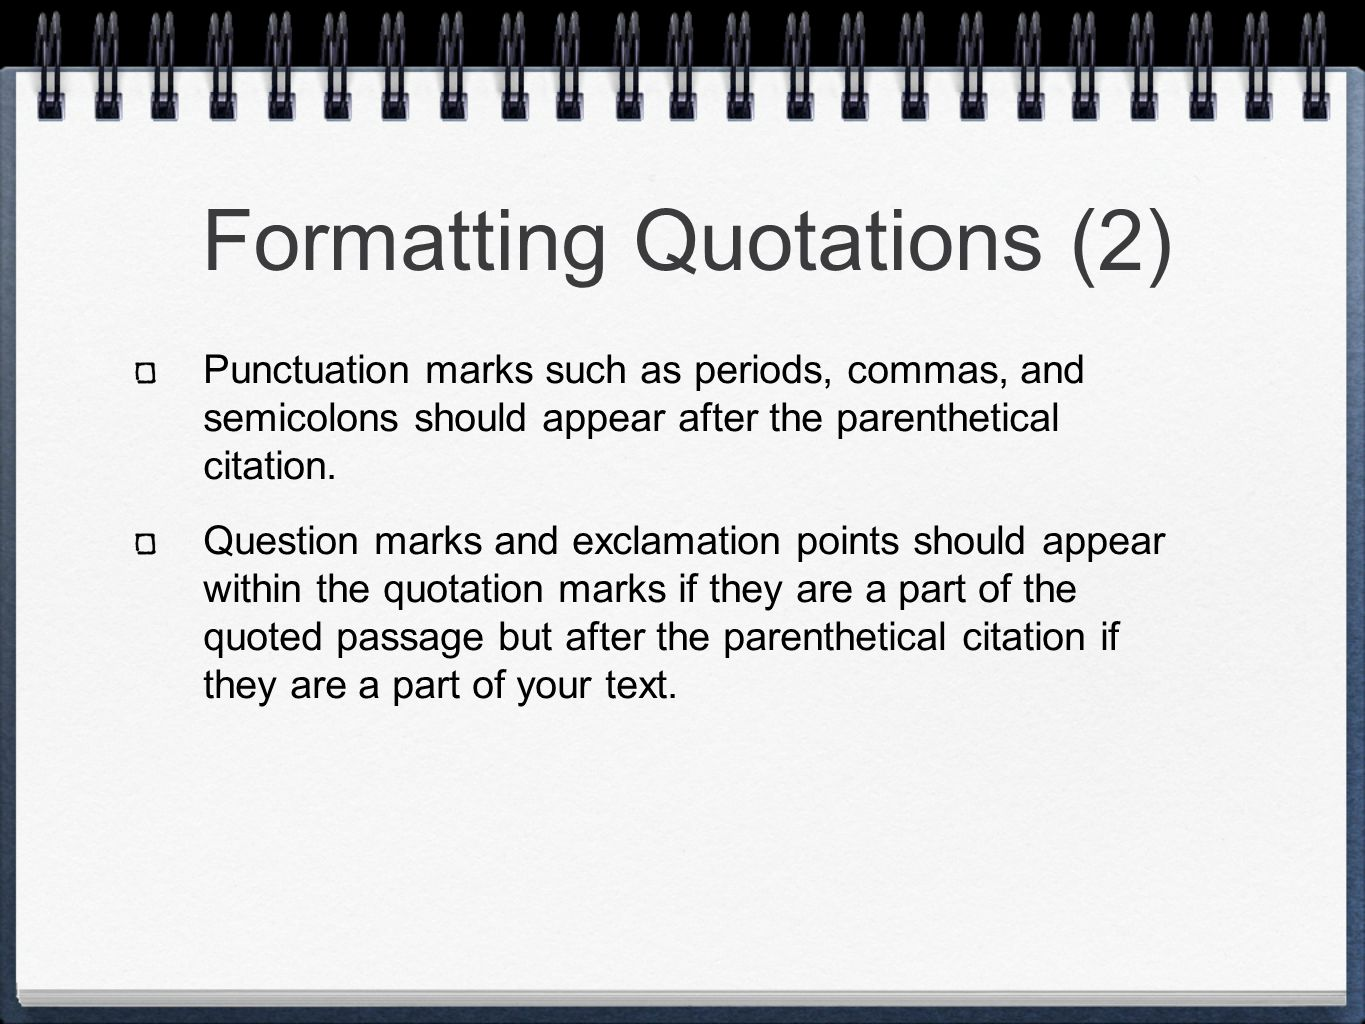 Formatting Quotations (2) Punctuation marks such as periods, commas, and semicolons should appear after the parenthetical citation.